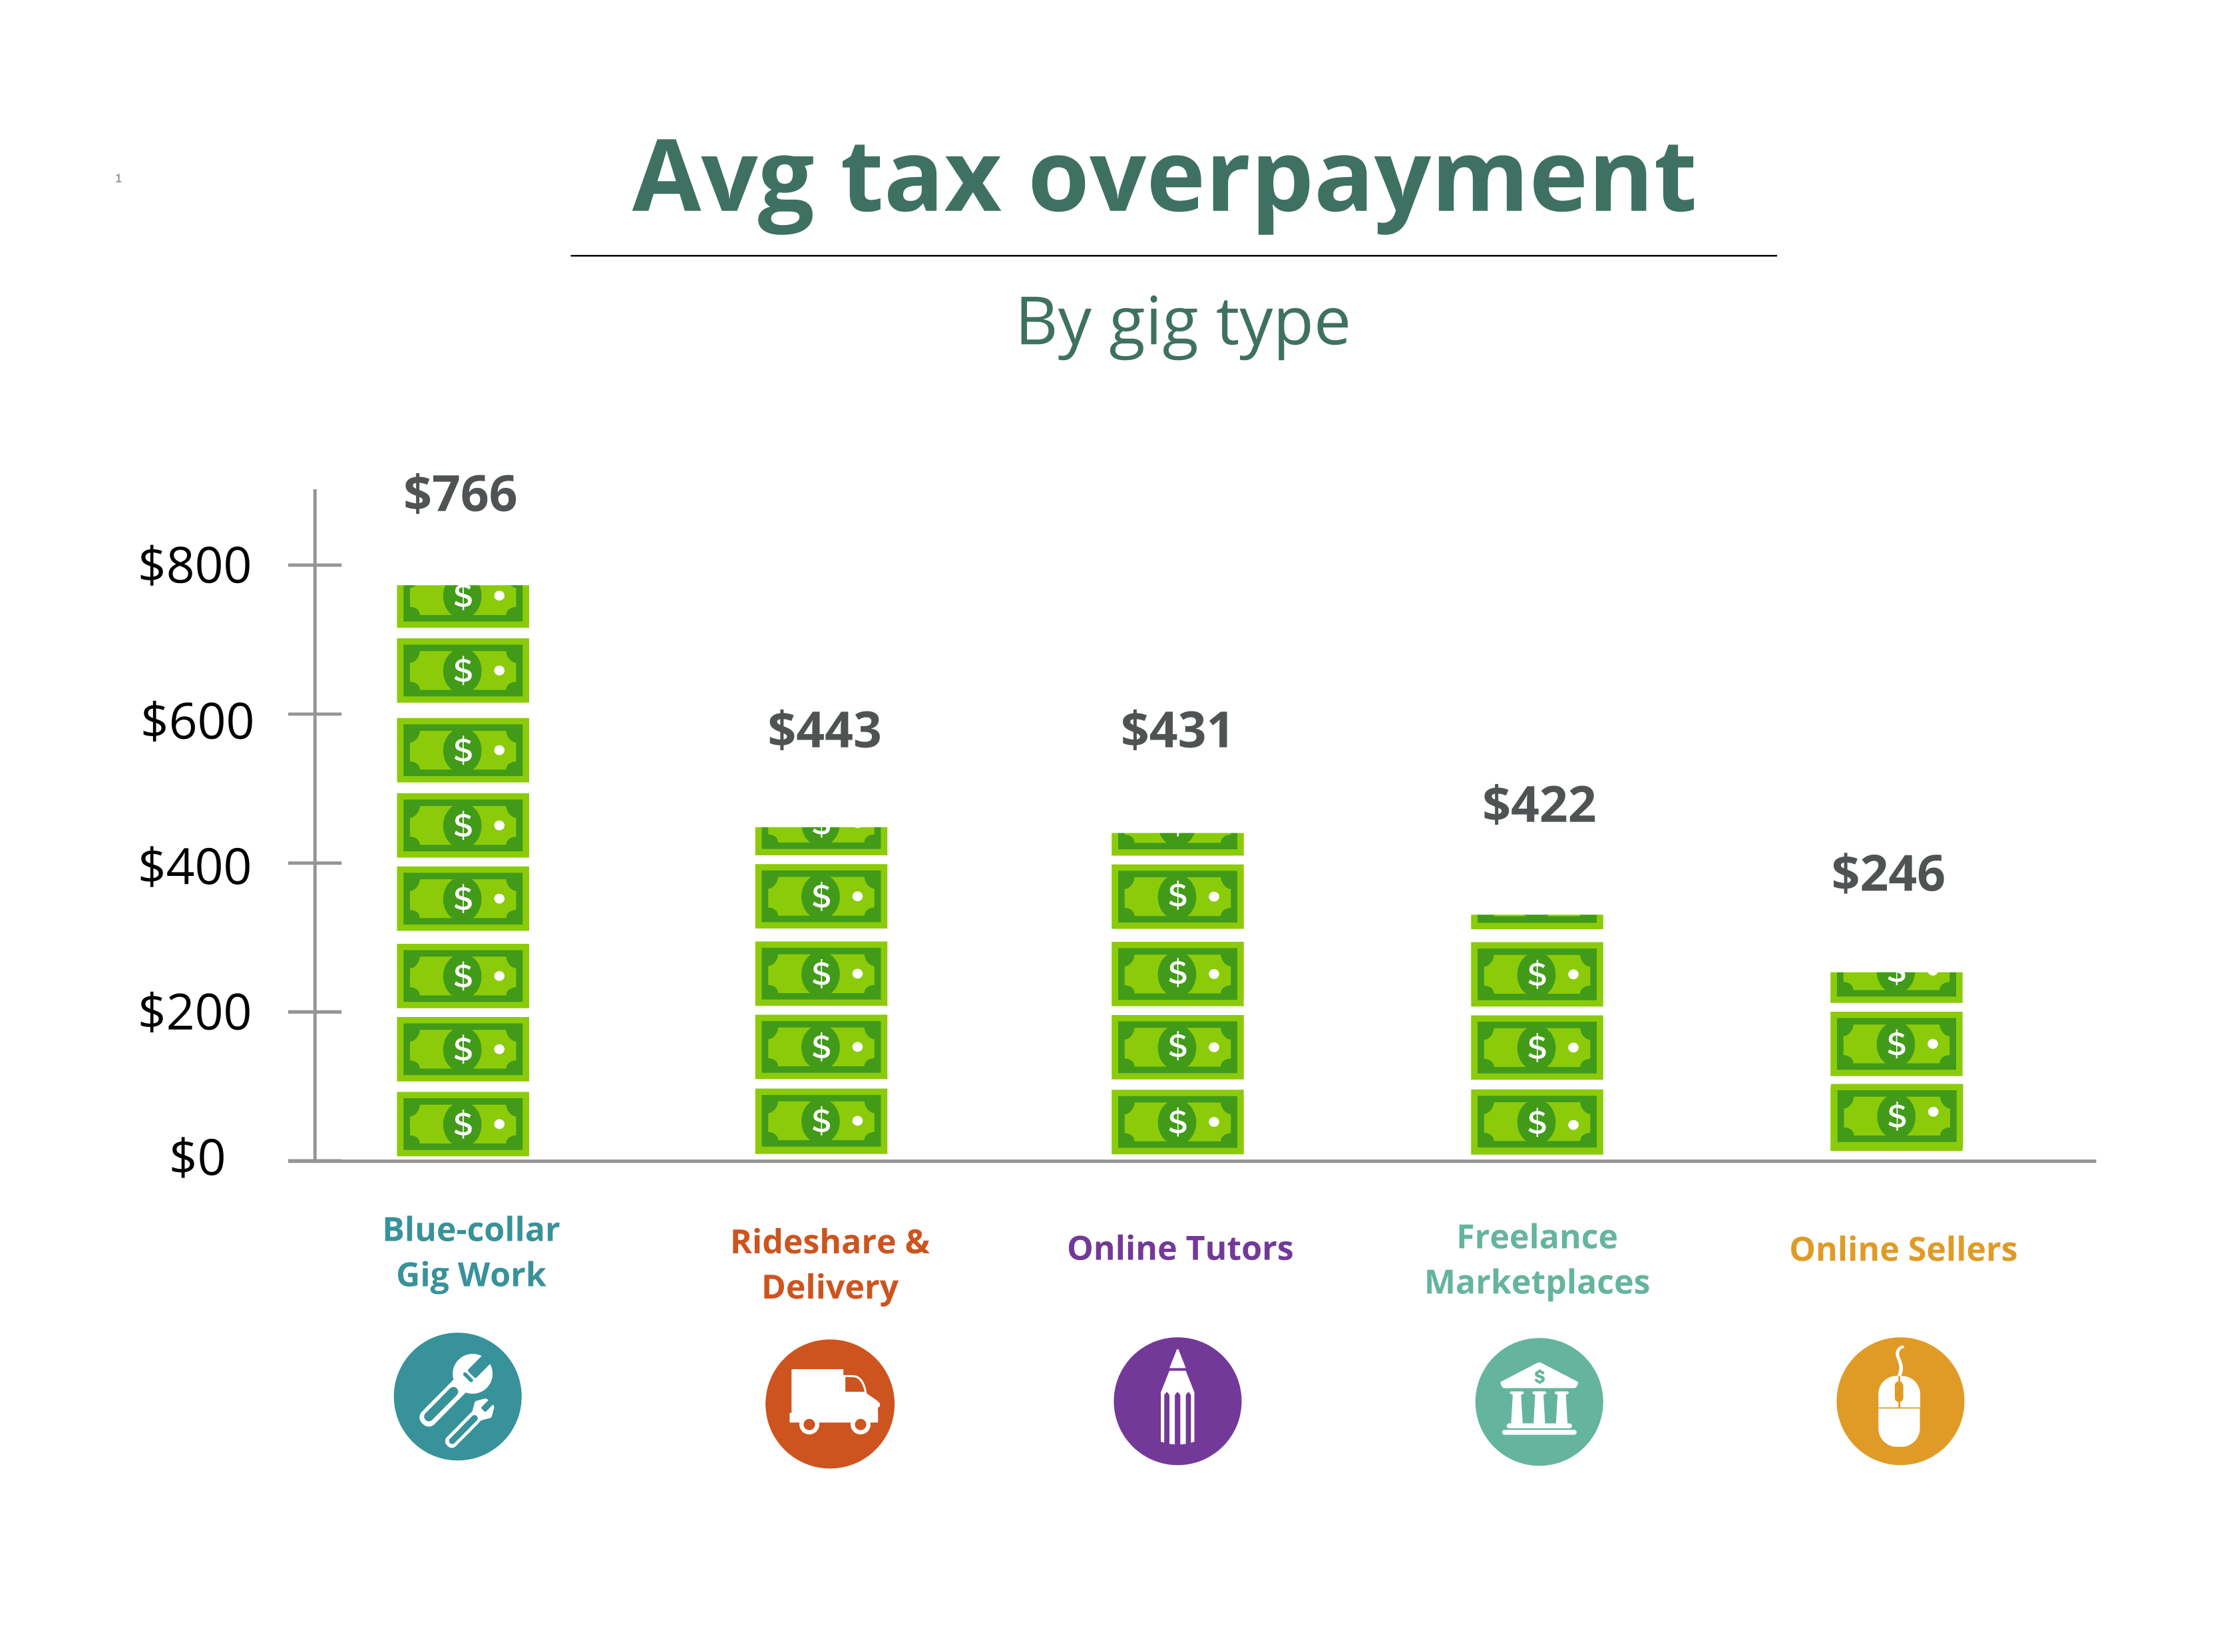 Whitepaper: US Gig Workers Overpay on Taxes by 21%